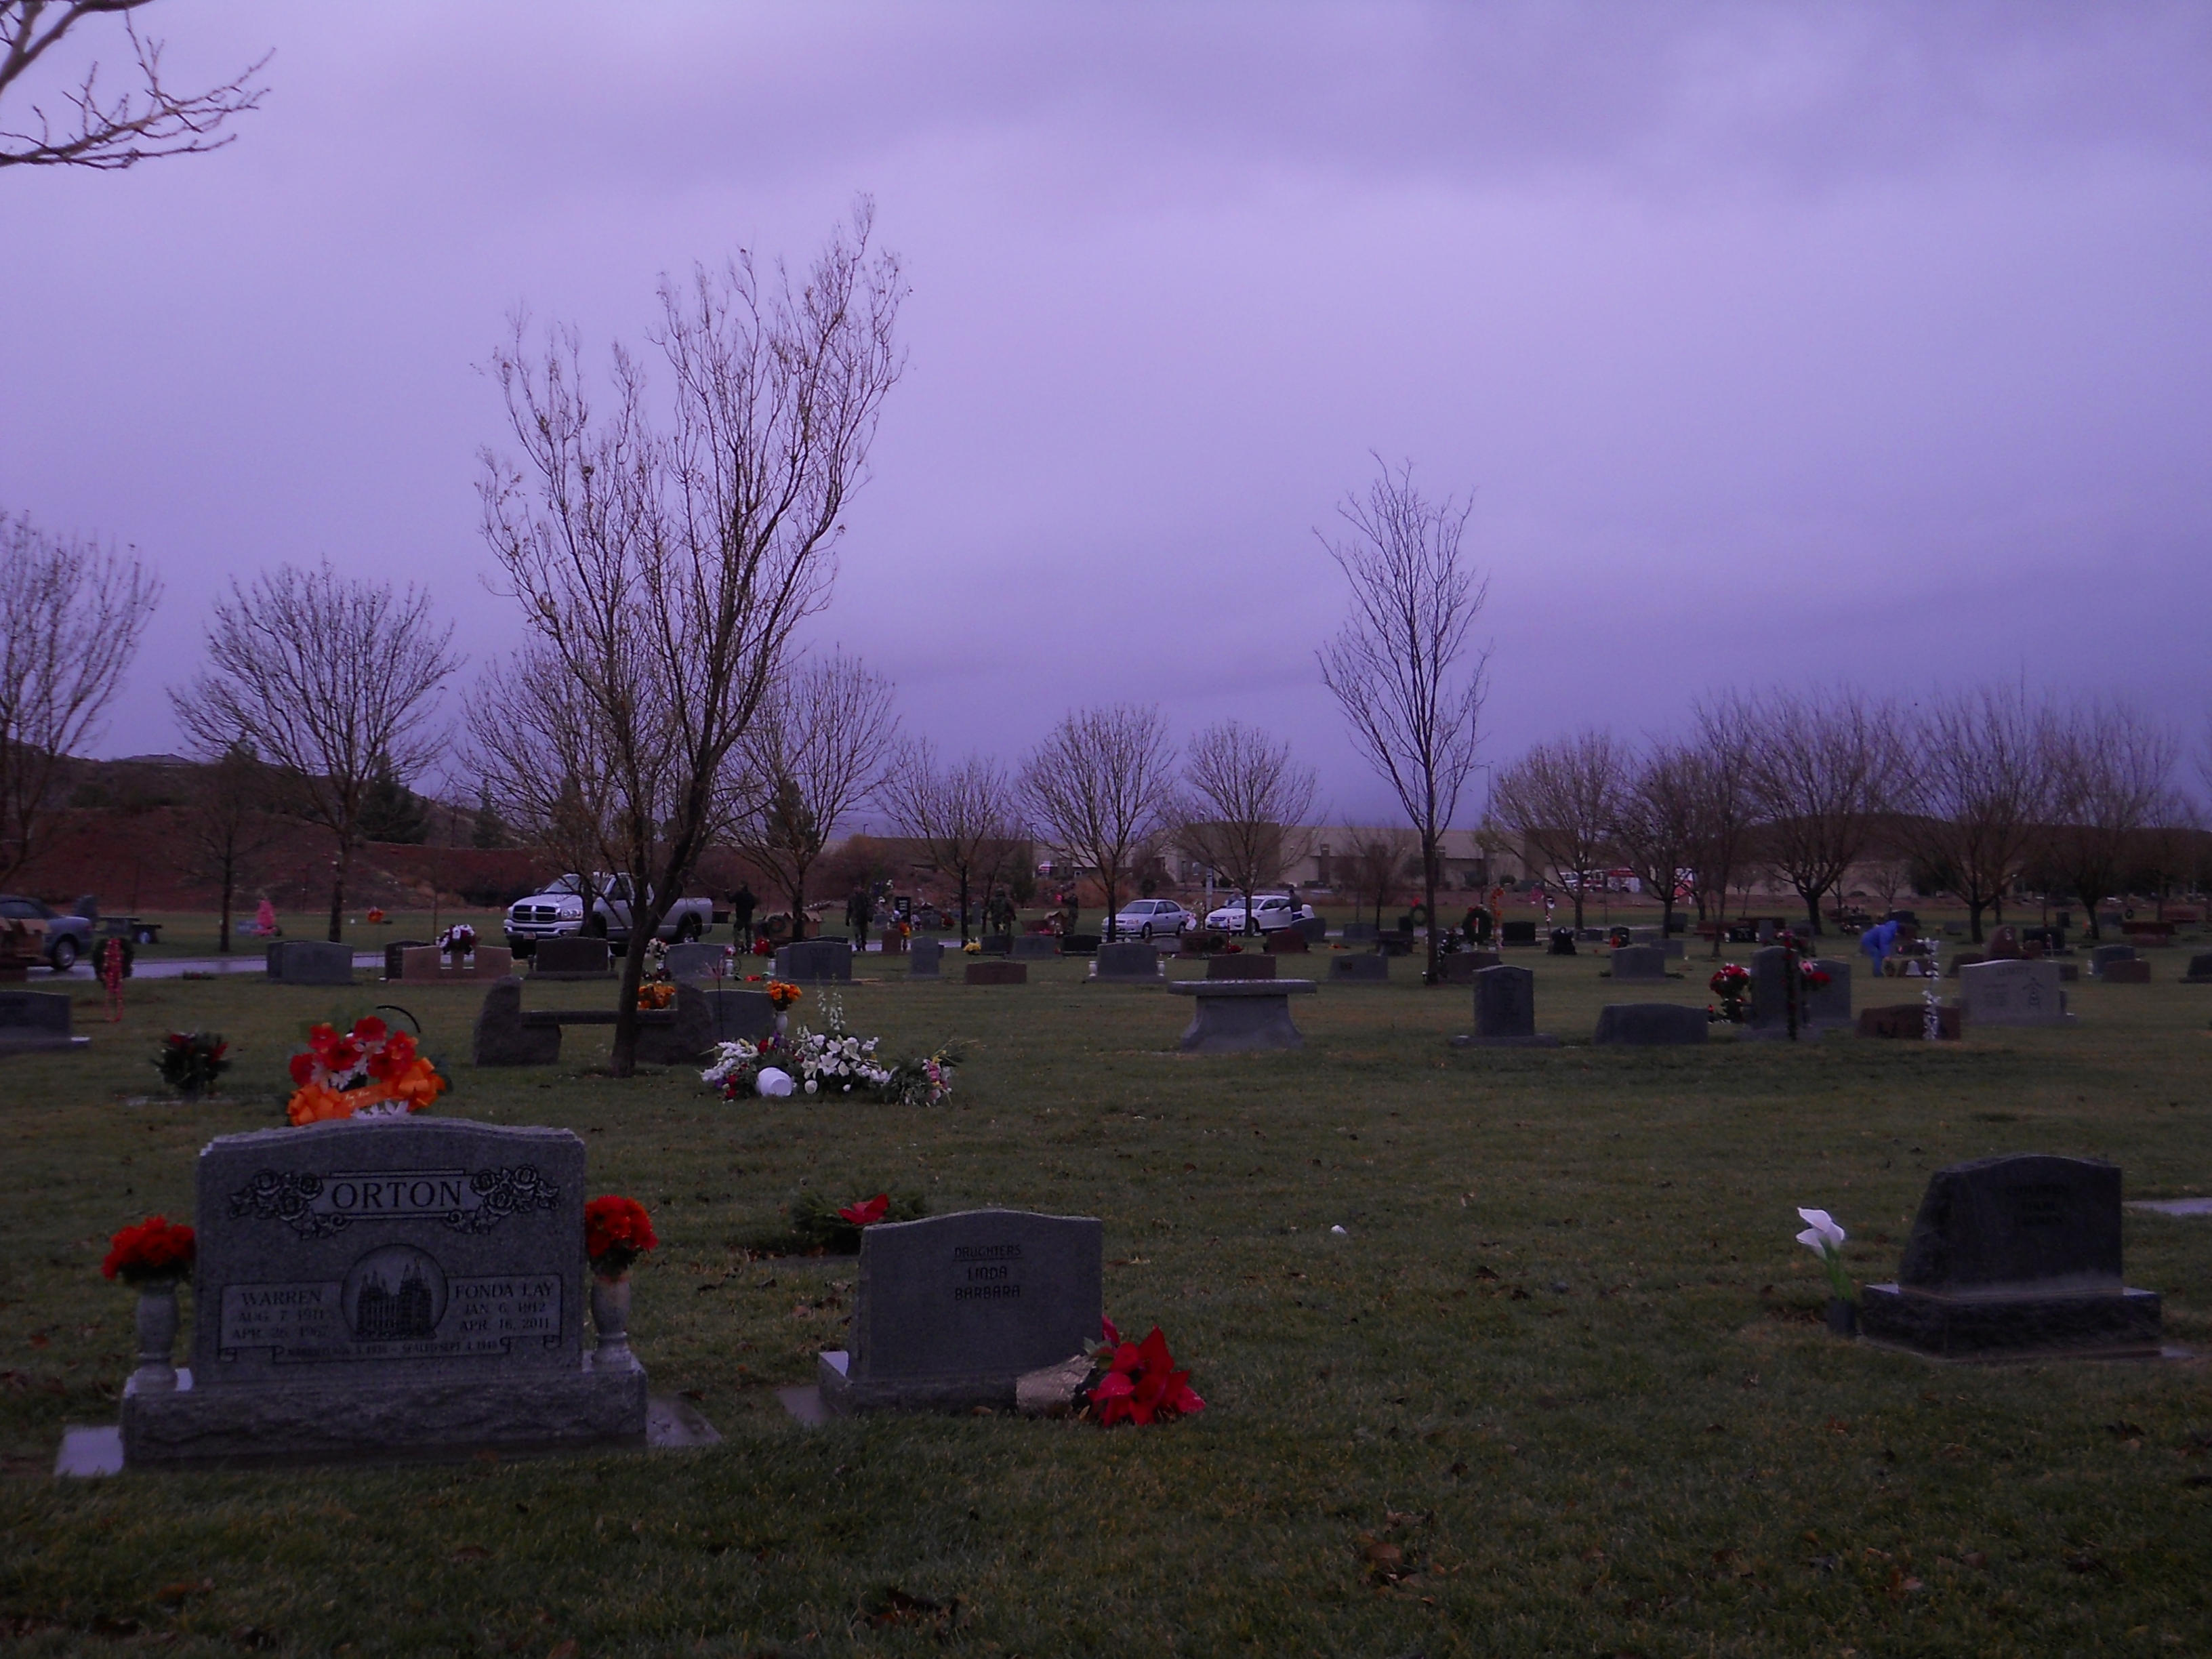 The dark sky sets a somber tone to the Wreaths Across America ceremony Saturday morning at the Tonaquint Cemetery located at 1851 South Dixie Drive in St. George, Utah, Dec. 13, 2014   Photo by Aspen Stoddard, St. George News